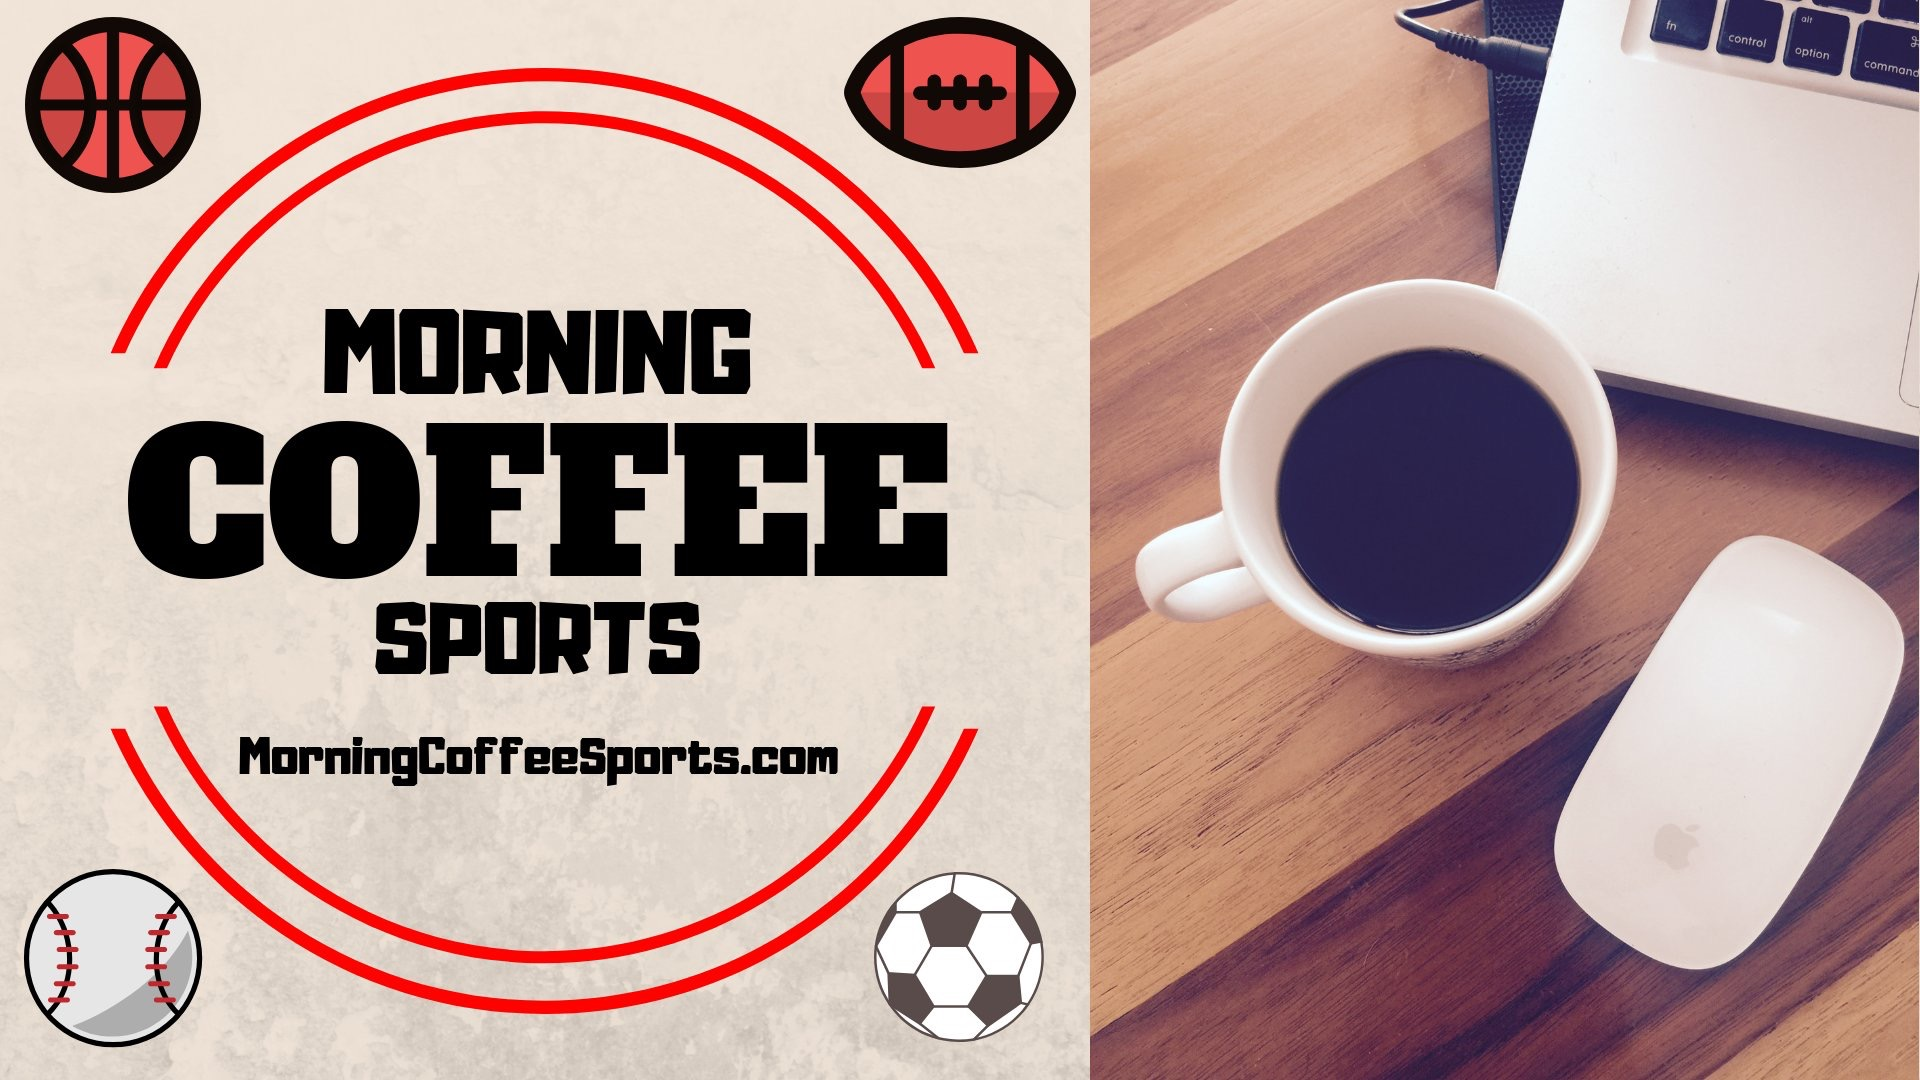 MORNING COFFEE SPORTS